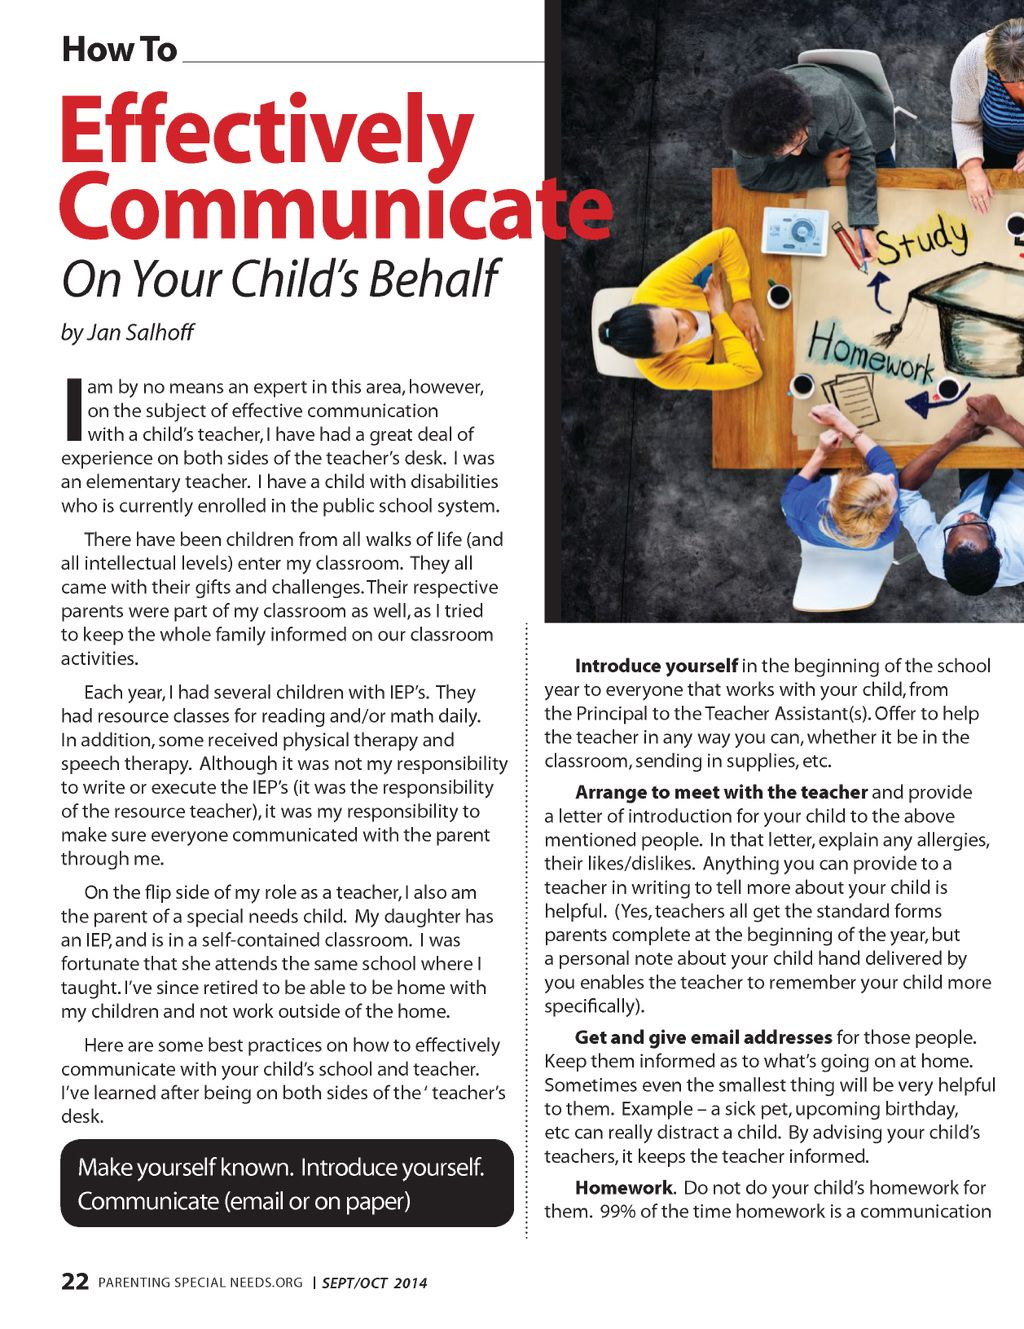 Parenting special needs magazine septoct 2014 page 22